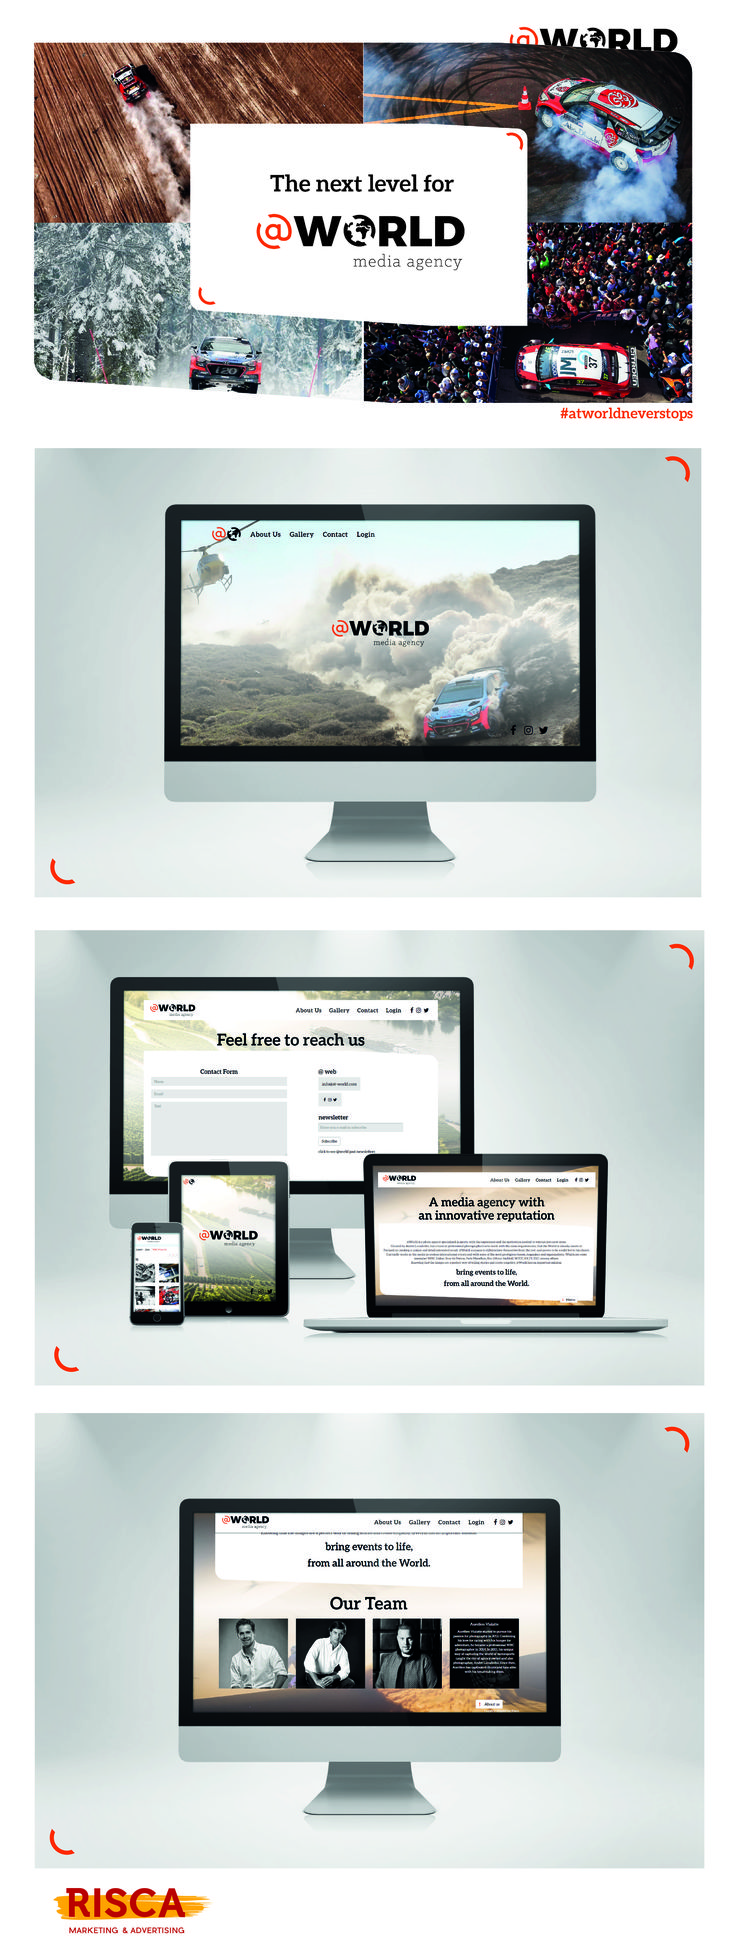 Website @World. Happily shaped by Risca. #hellorisca #@world #webdesign